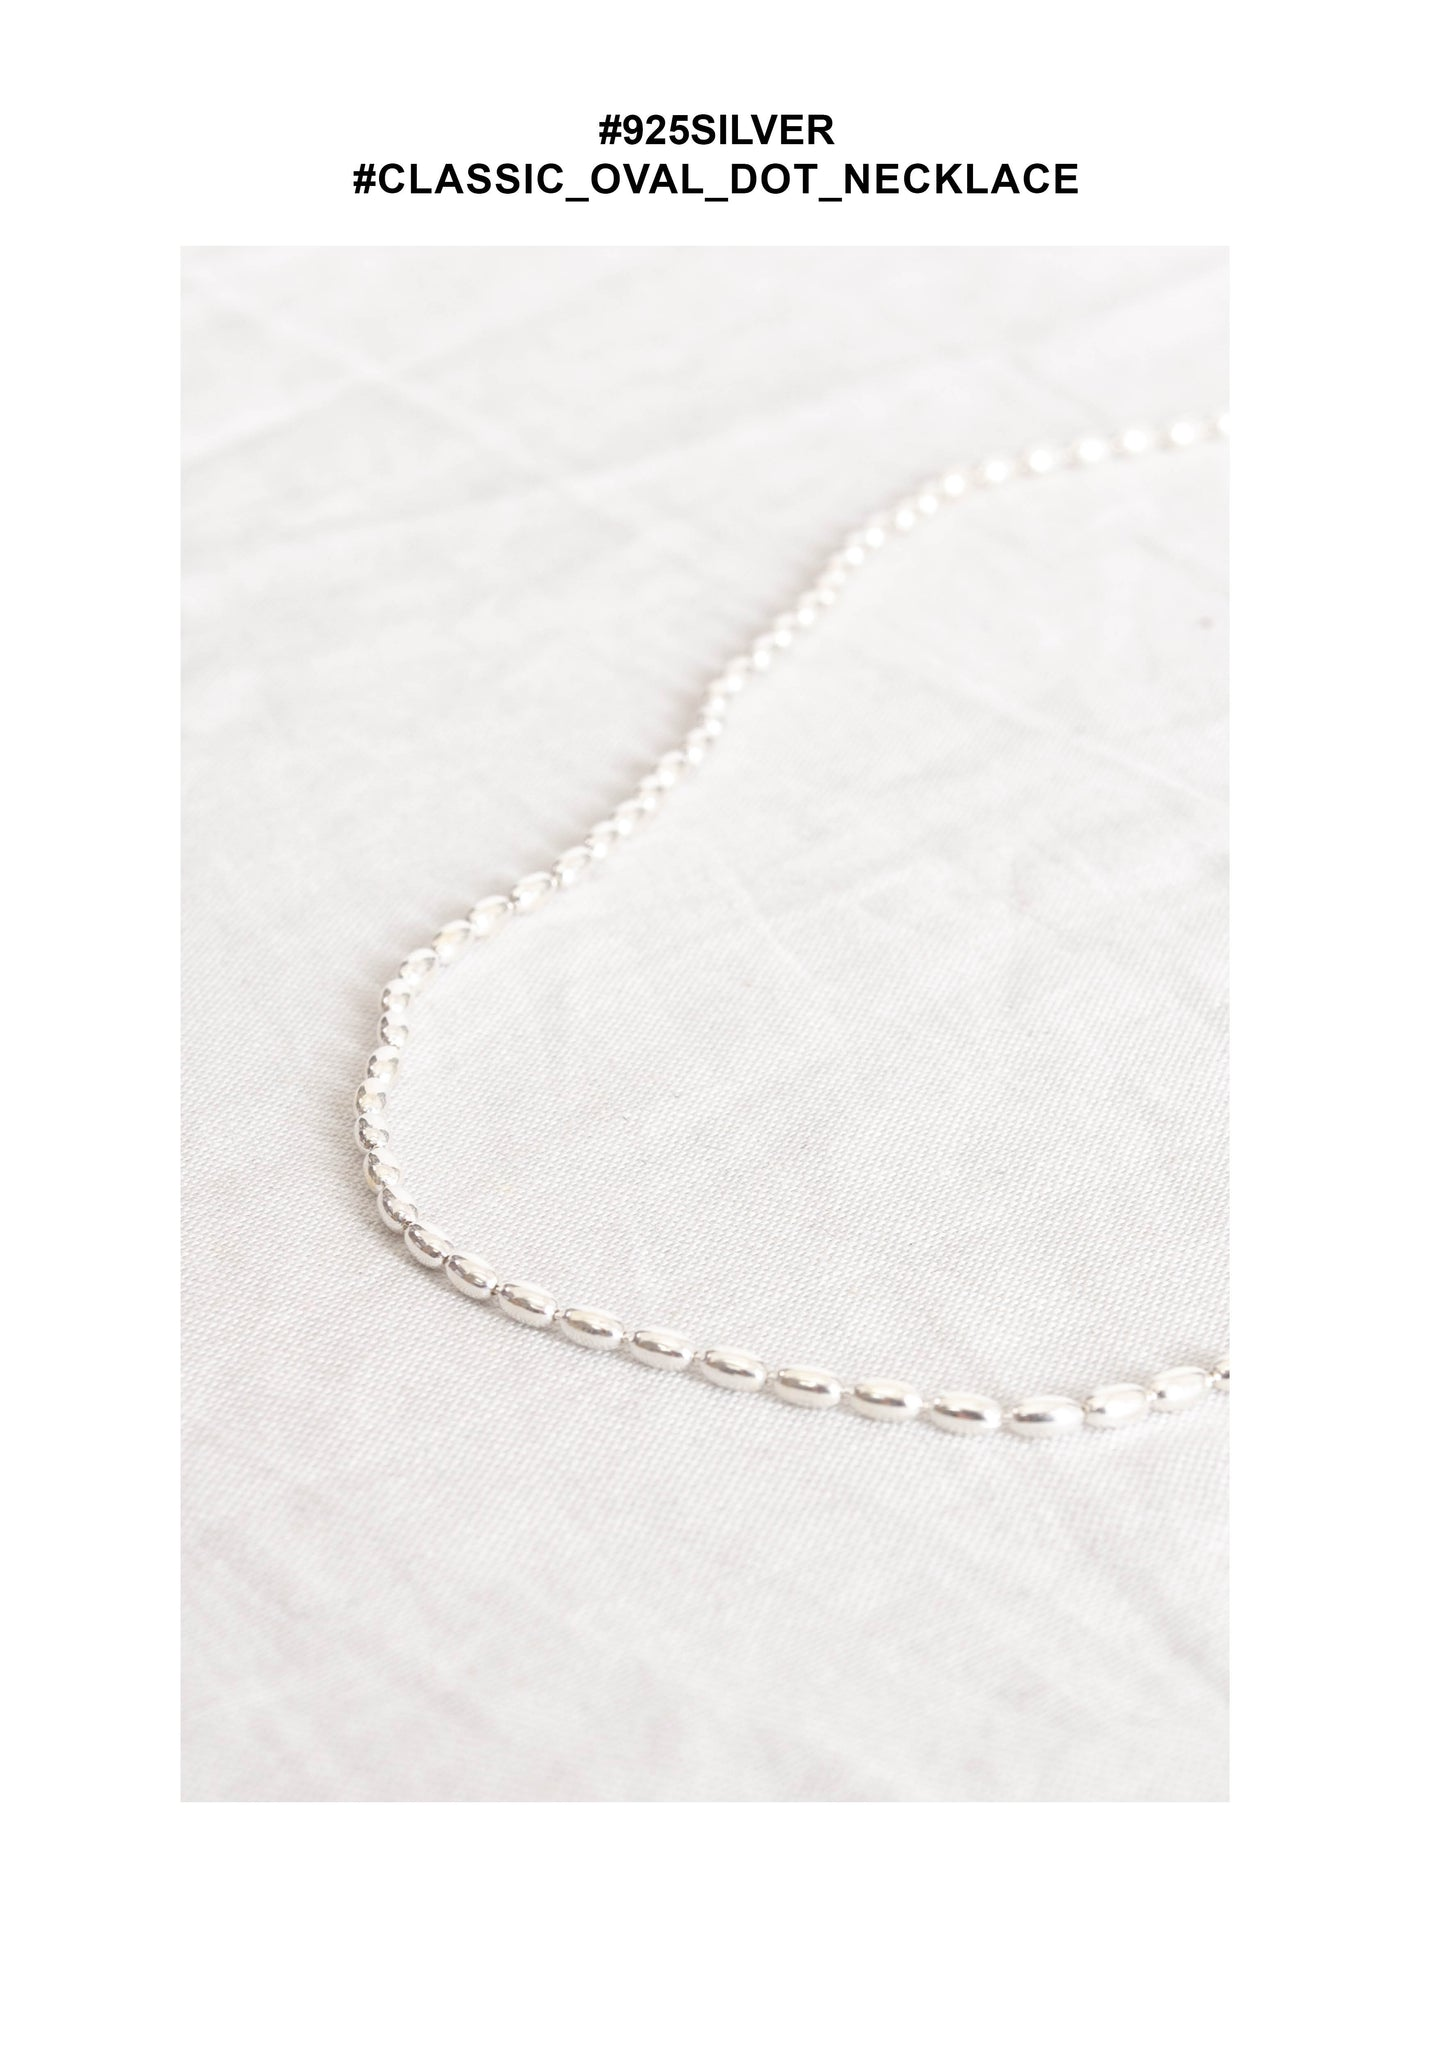 925 Silver Classic Oval Dot Necklace - whoami